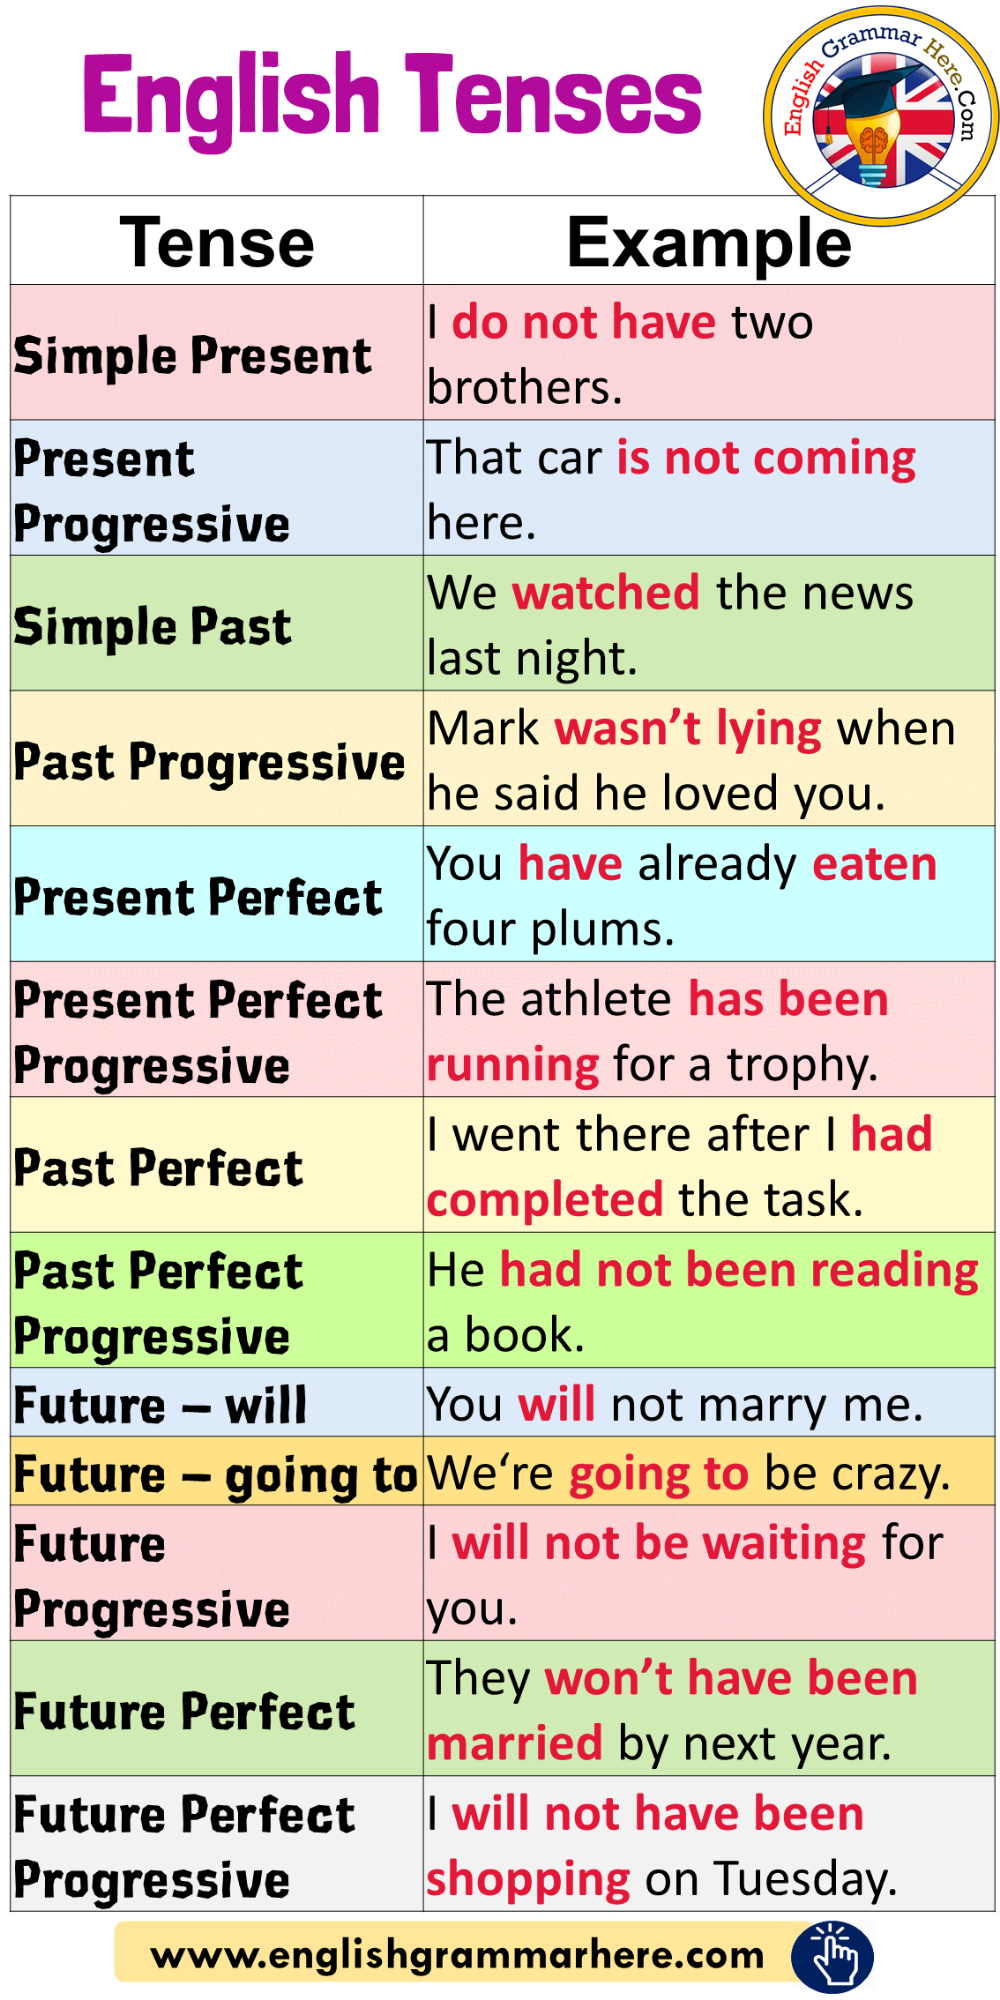 English Tenses And Example Sentences English Grammar Here English Grammar Teaching English Grammar Learn English Vocabulary [ 2000 x 1000 Pixel ]